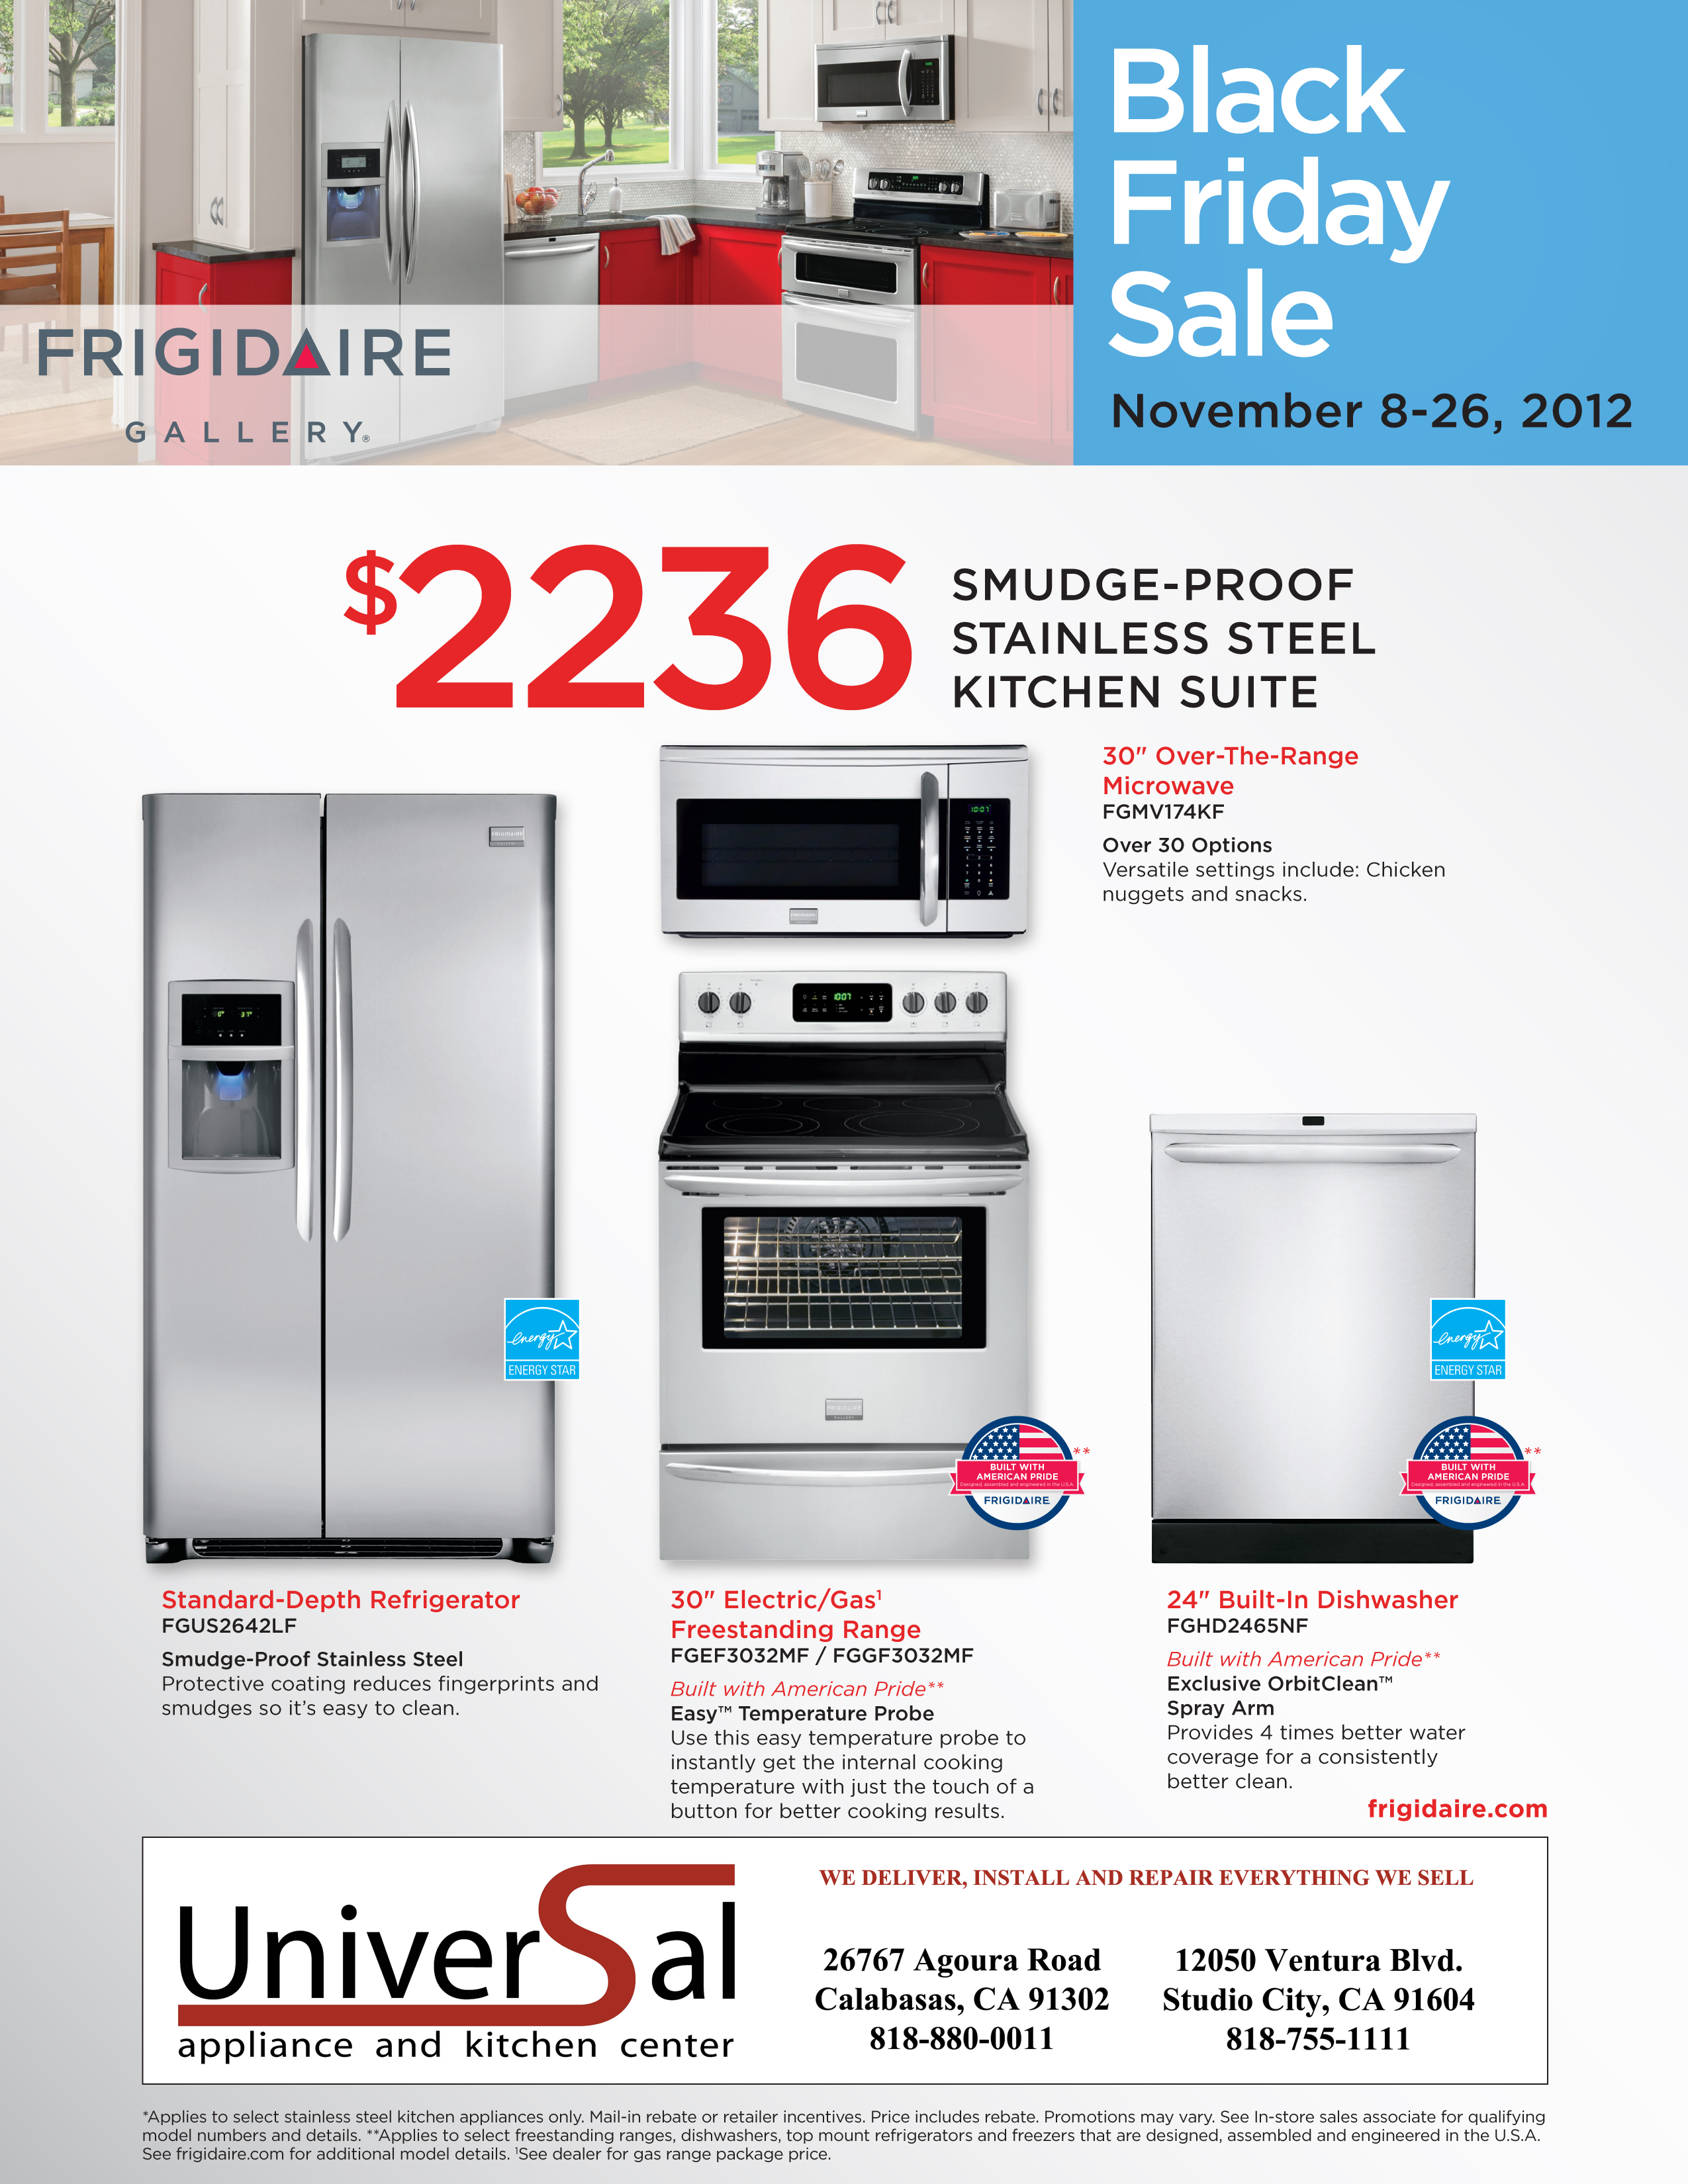 Appliances Packages Sale Black Friday Appliance Package Specials Universal Appliance And